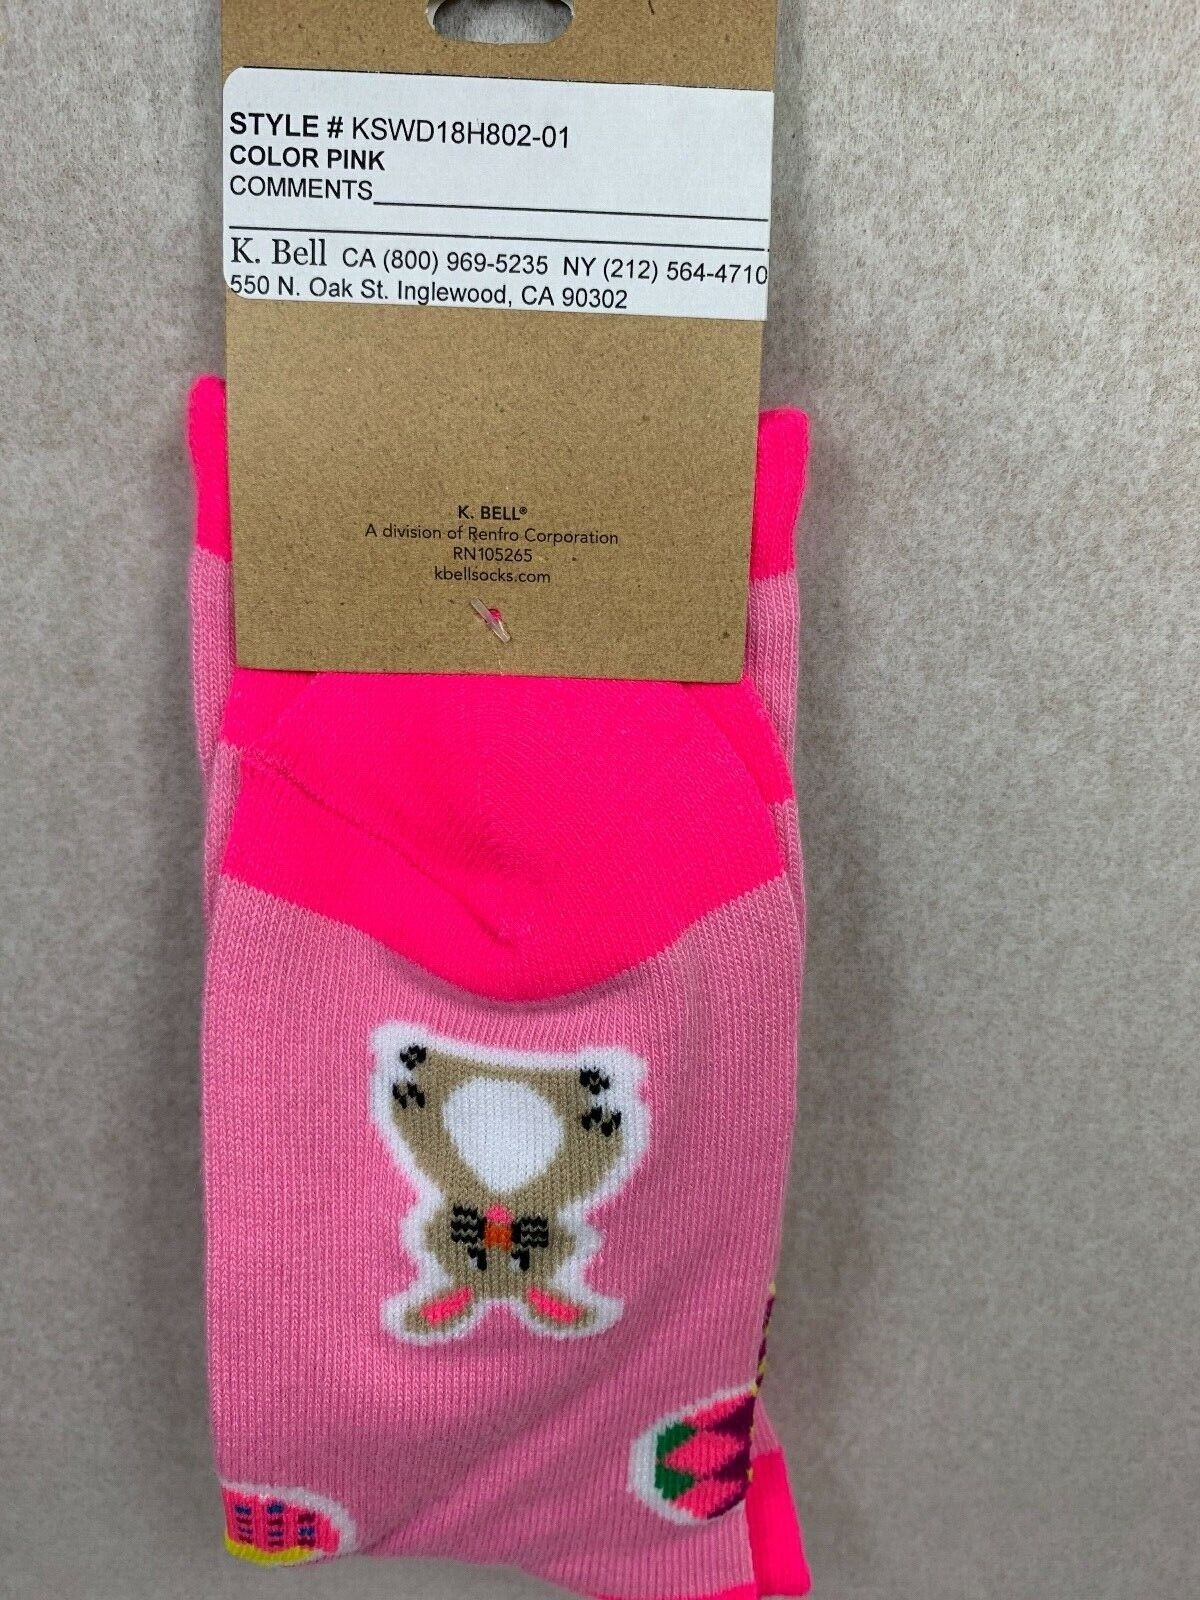 HAPPY ESTER WOMEN CREW SOCKS SIZE 9-11 BY K.BELL PINK RELIGION ITEM Clothing, Shoes & Accessories